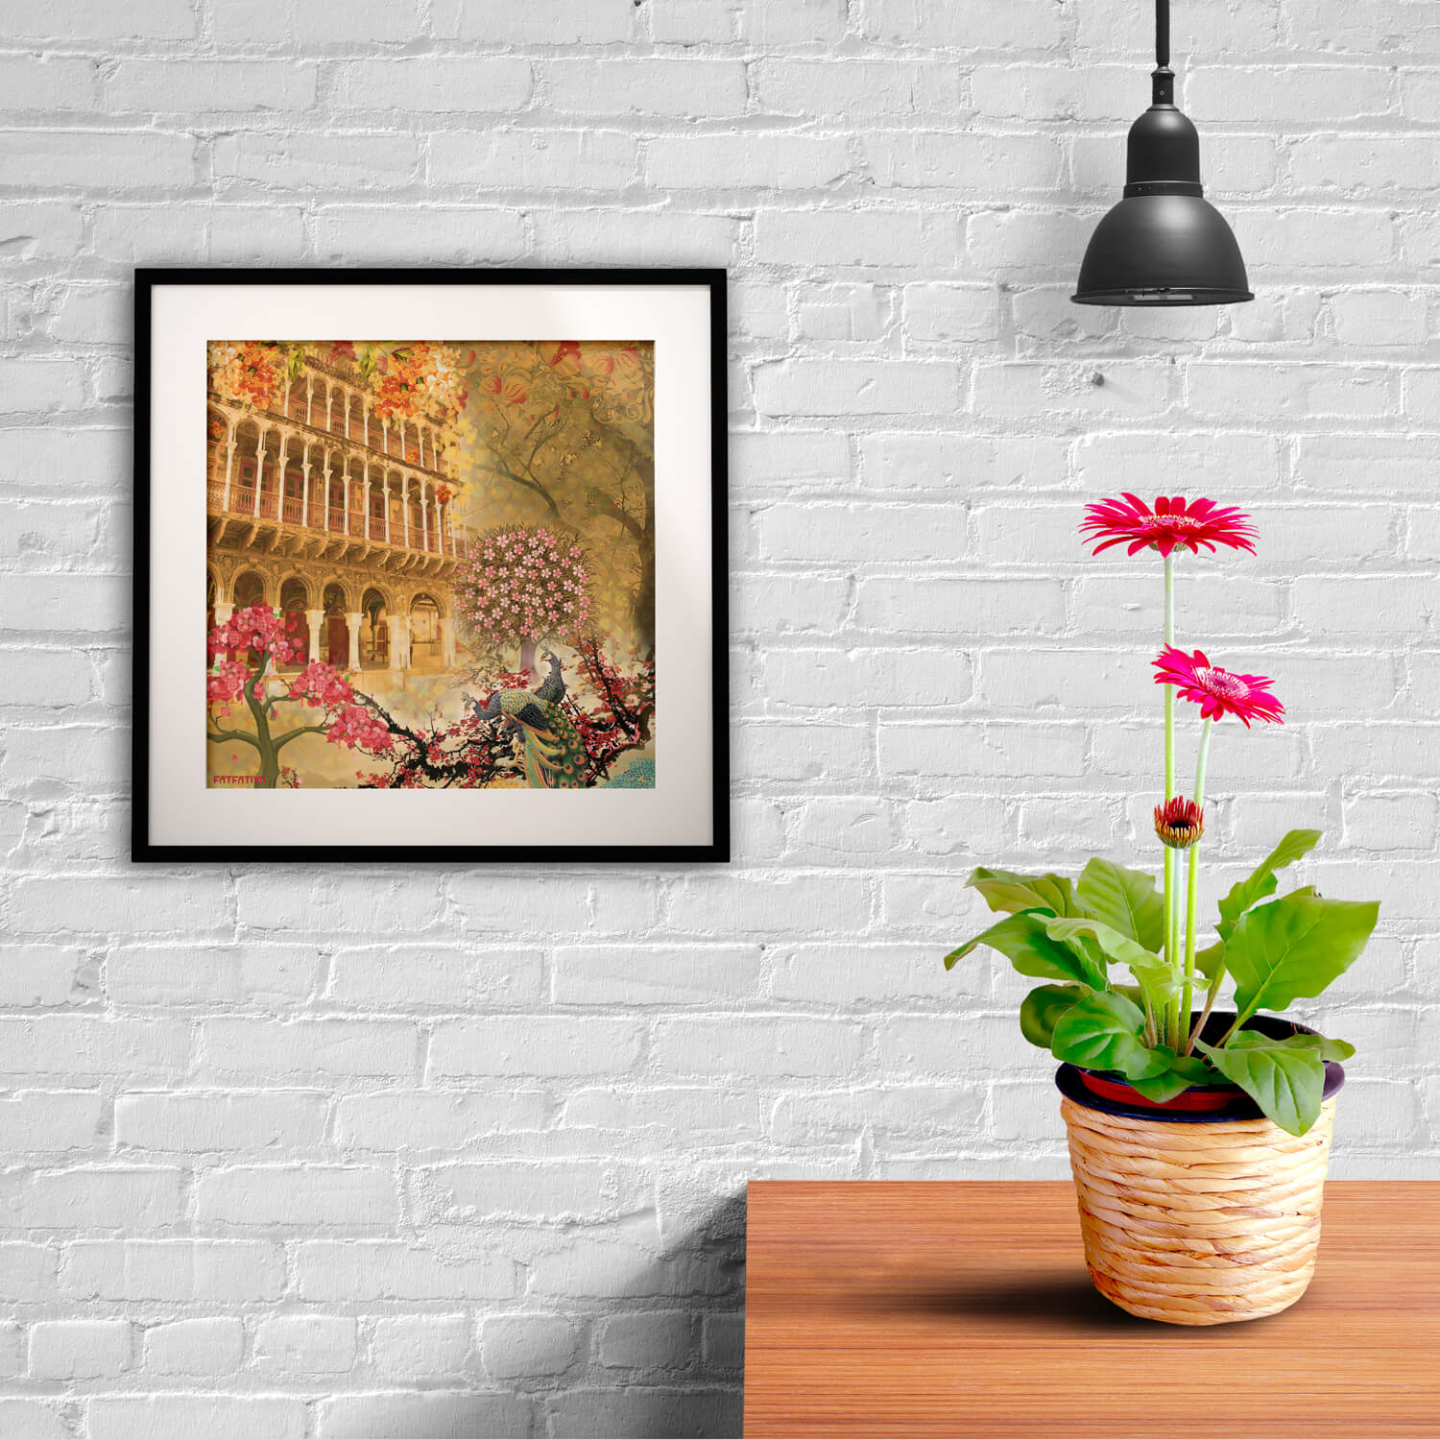 Historical Fort and Floral Themed Framed Art Print